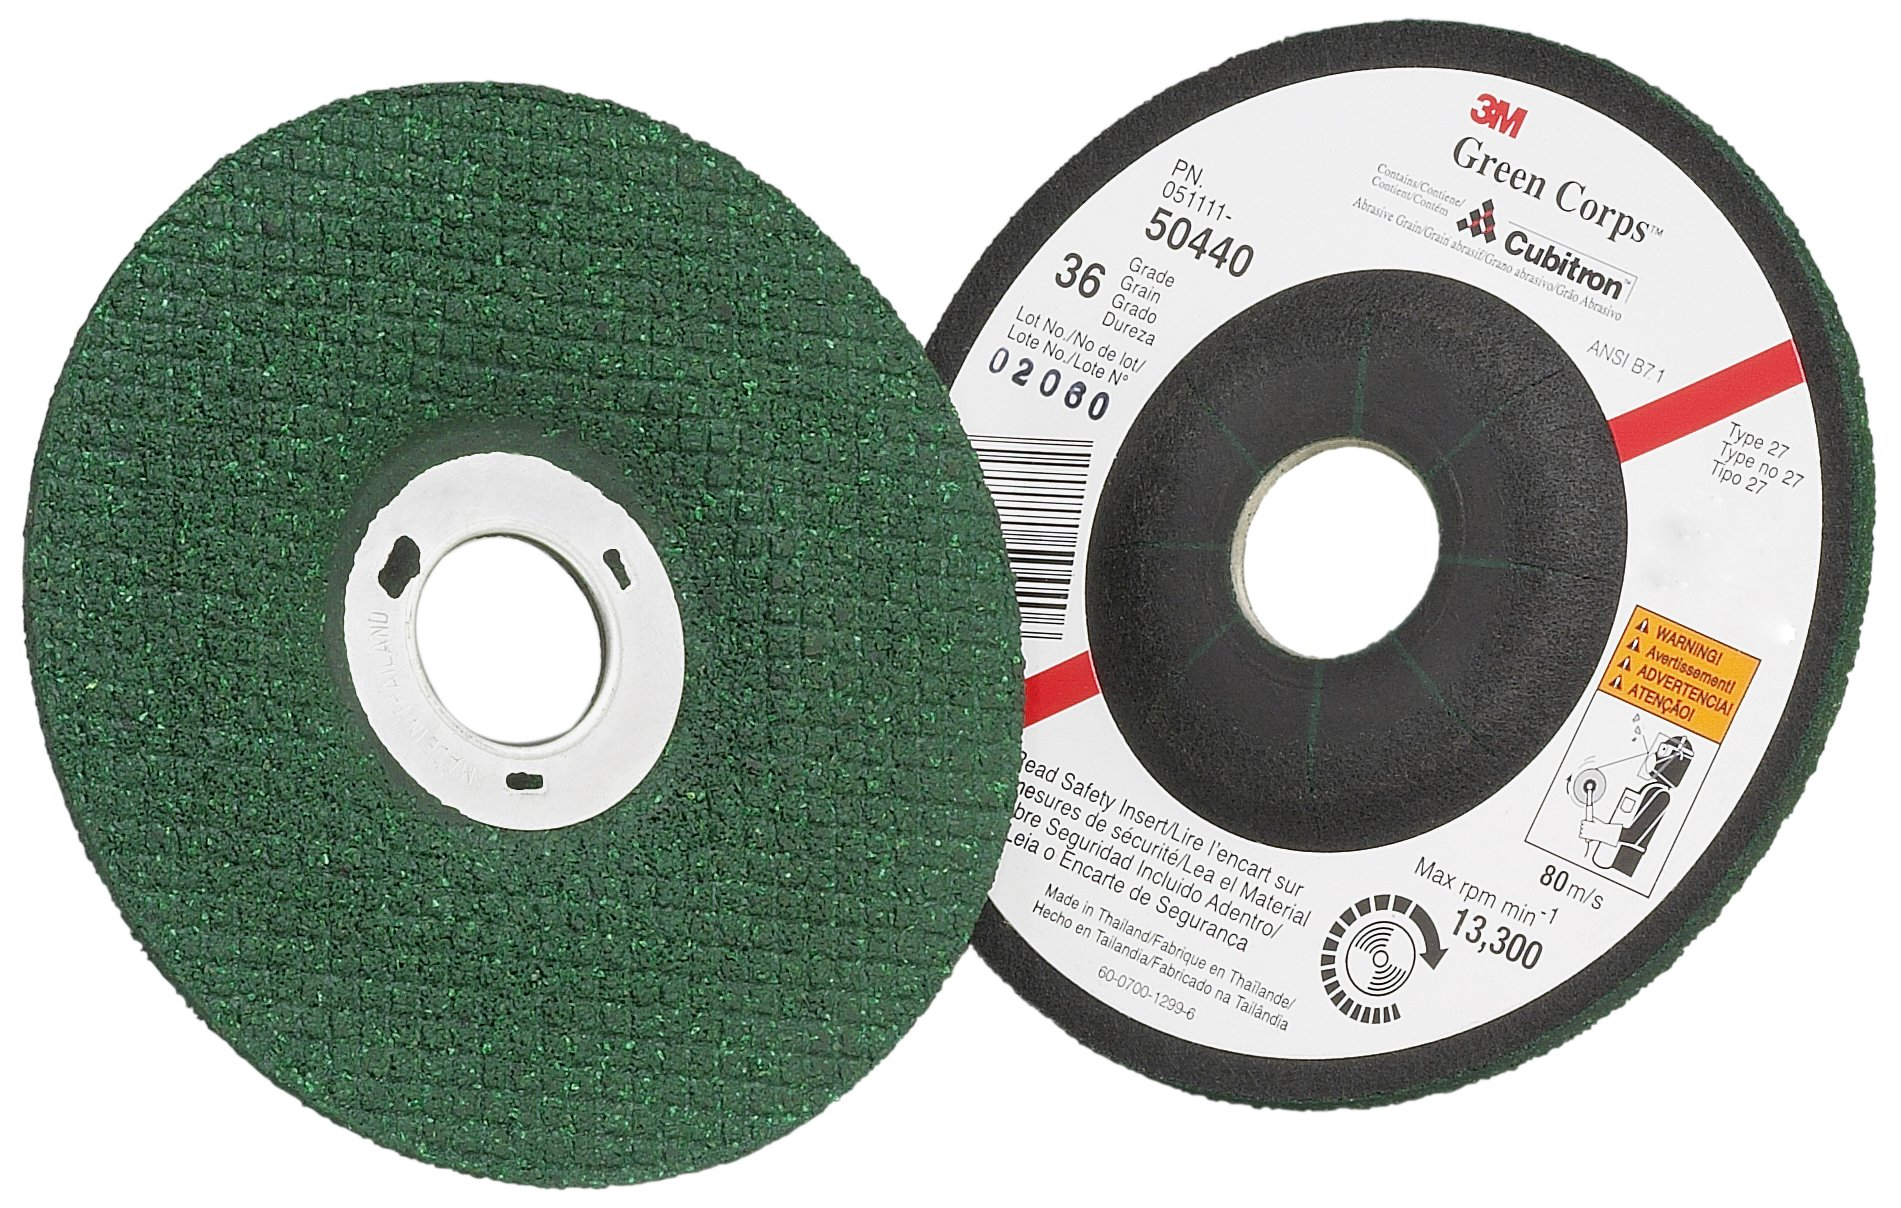 3M(TM) Green Corps(TM) Flexible Grinding Wheel, Ceramic Aluminum Oxide, 4-1/2'' Diameter x 1/8'' Thick, 7/8'' Center Hole Diameter, 46 Grit, 13300 rpm, Green  (Pack of 20)